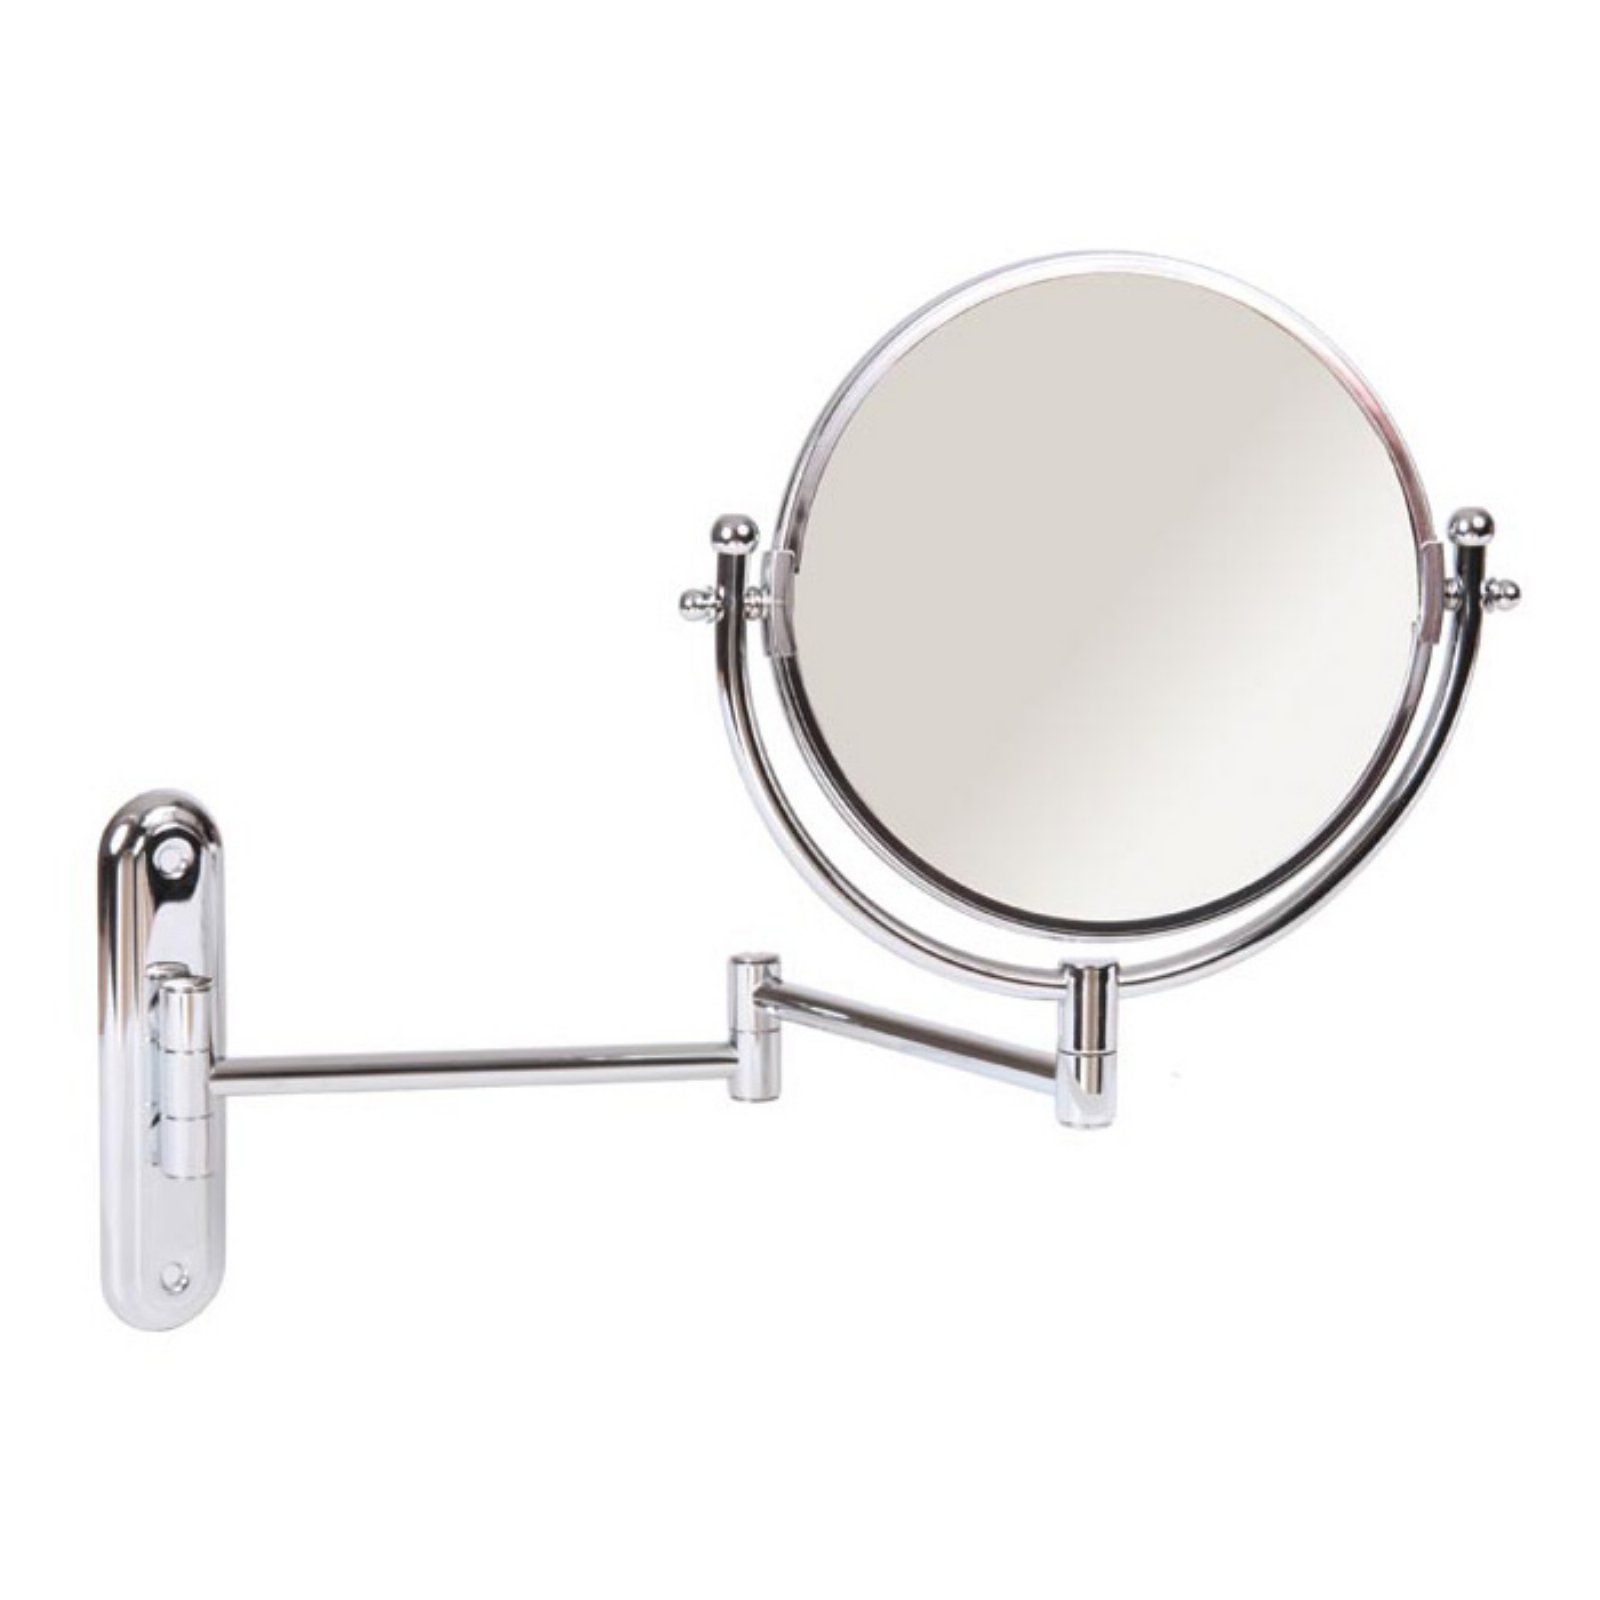 Taymor Wall Mount Swing Arm Rotating Mirror